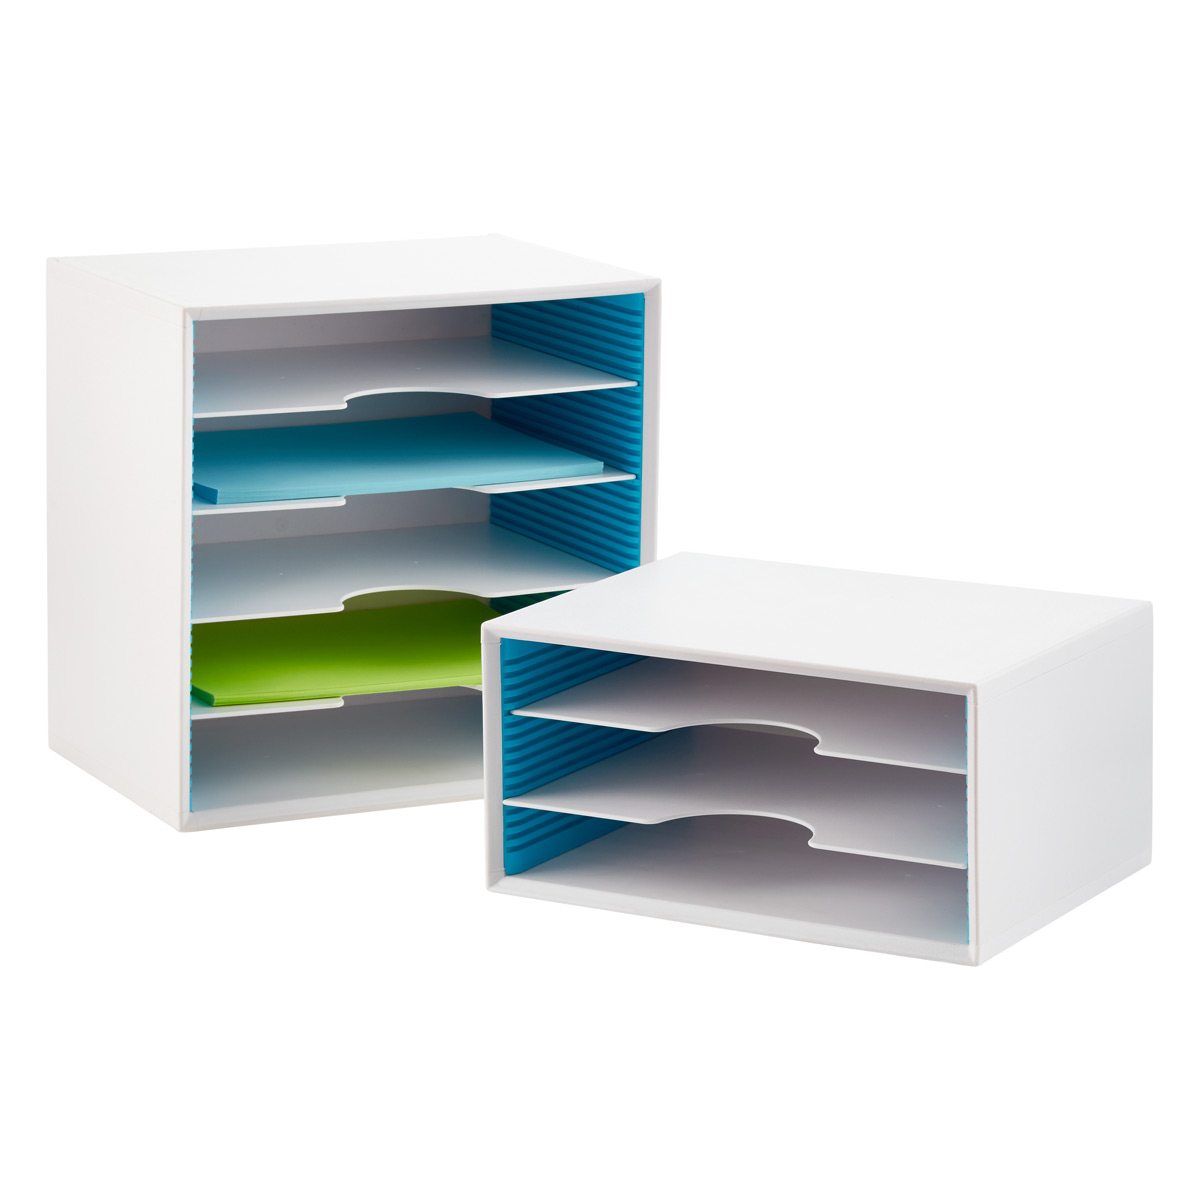 Diy Built In Bookcase Reveal An Ikea Hack besides Messy Kitchen 10 together with 20 Inspiring Home  mand Centers as well Diy Sea Sensory Bottles as well Profile b 507 r 53772 u 812d22. on messy office storage